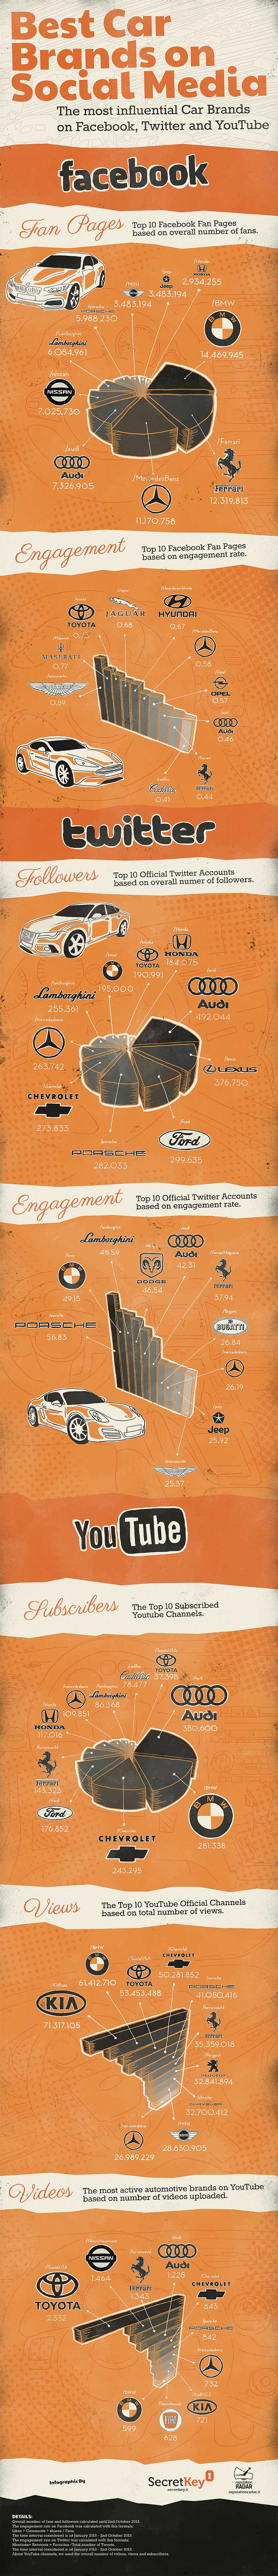 Top 10 Car Brands on Social Media